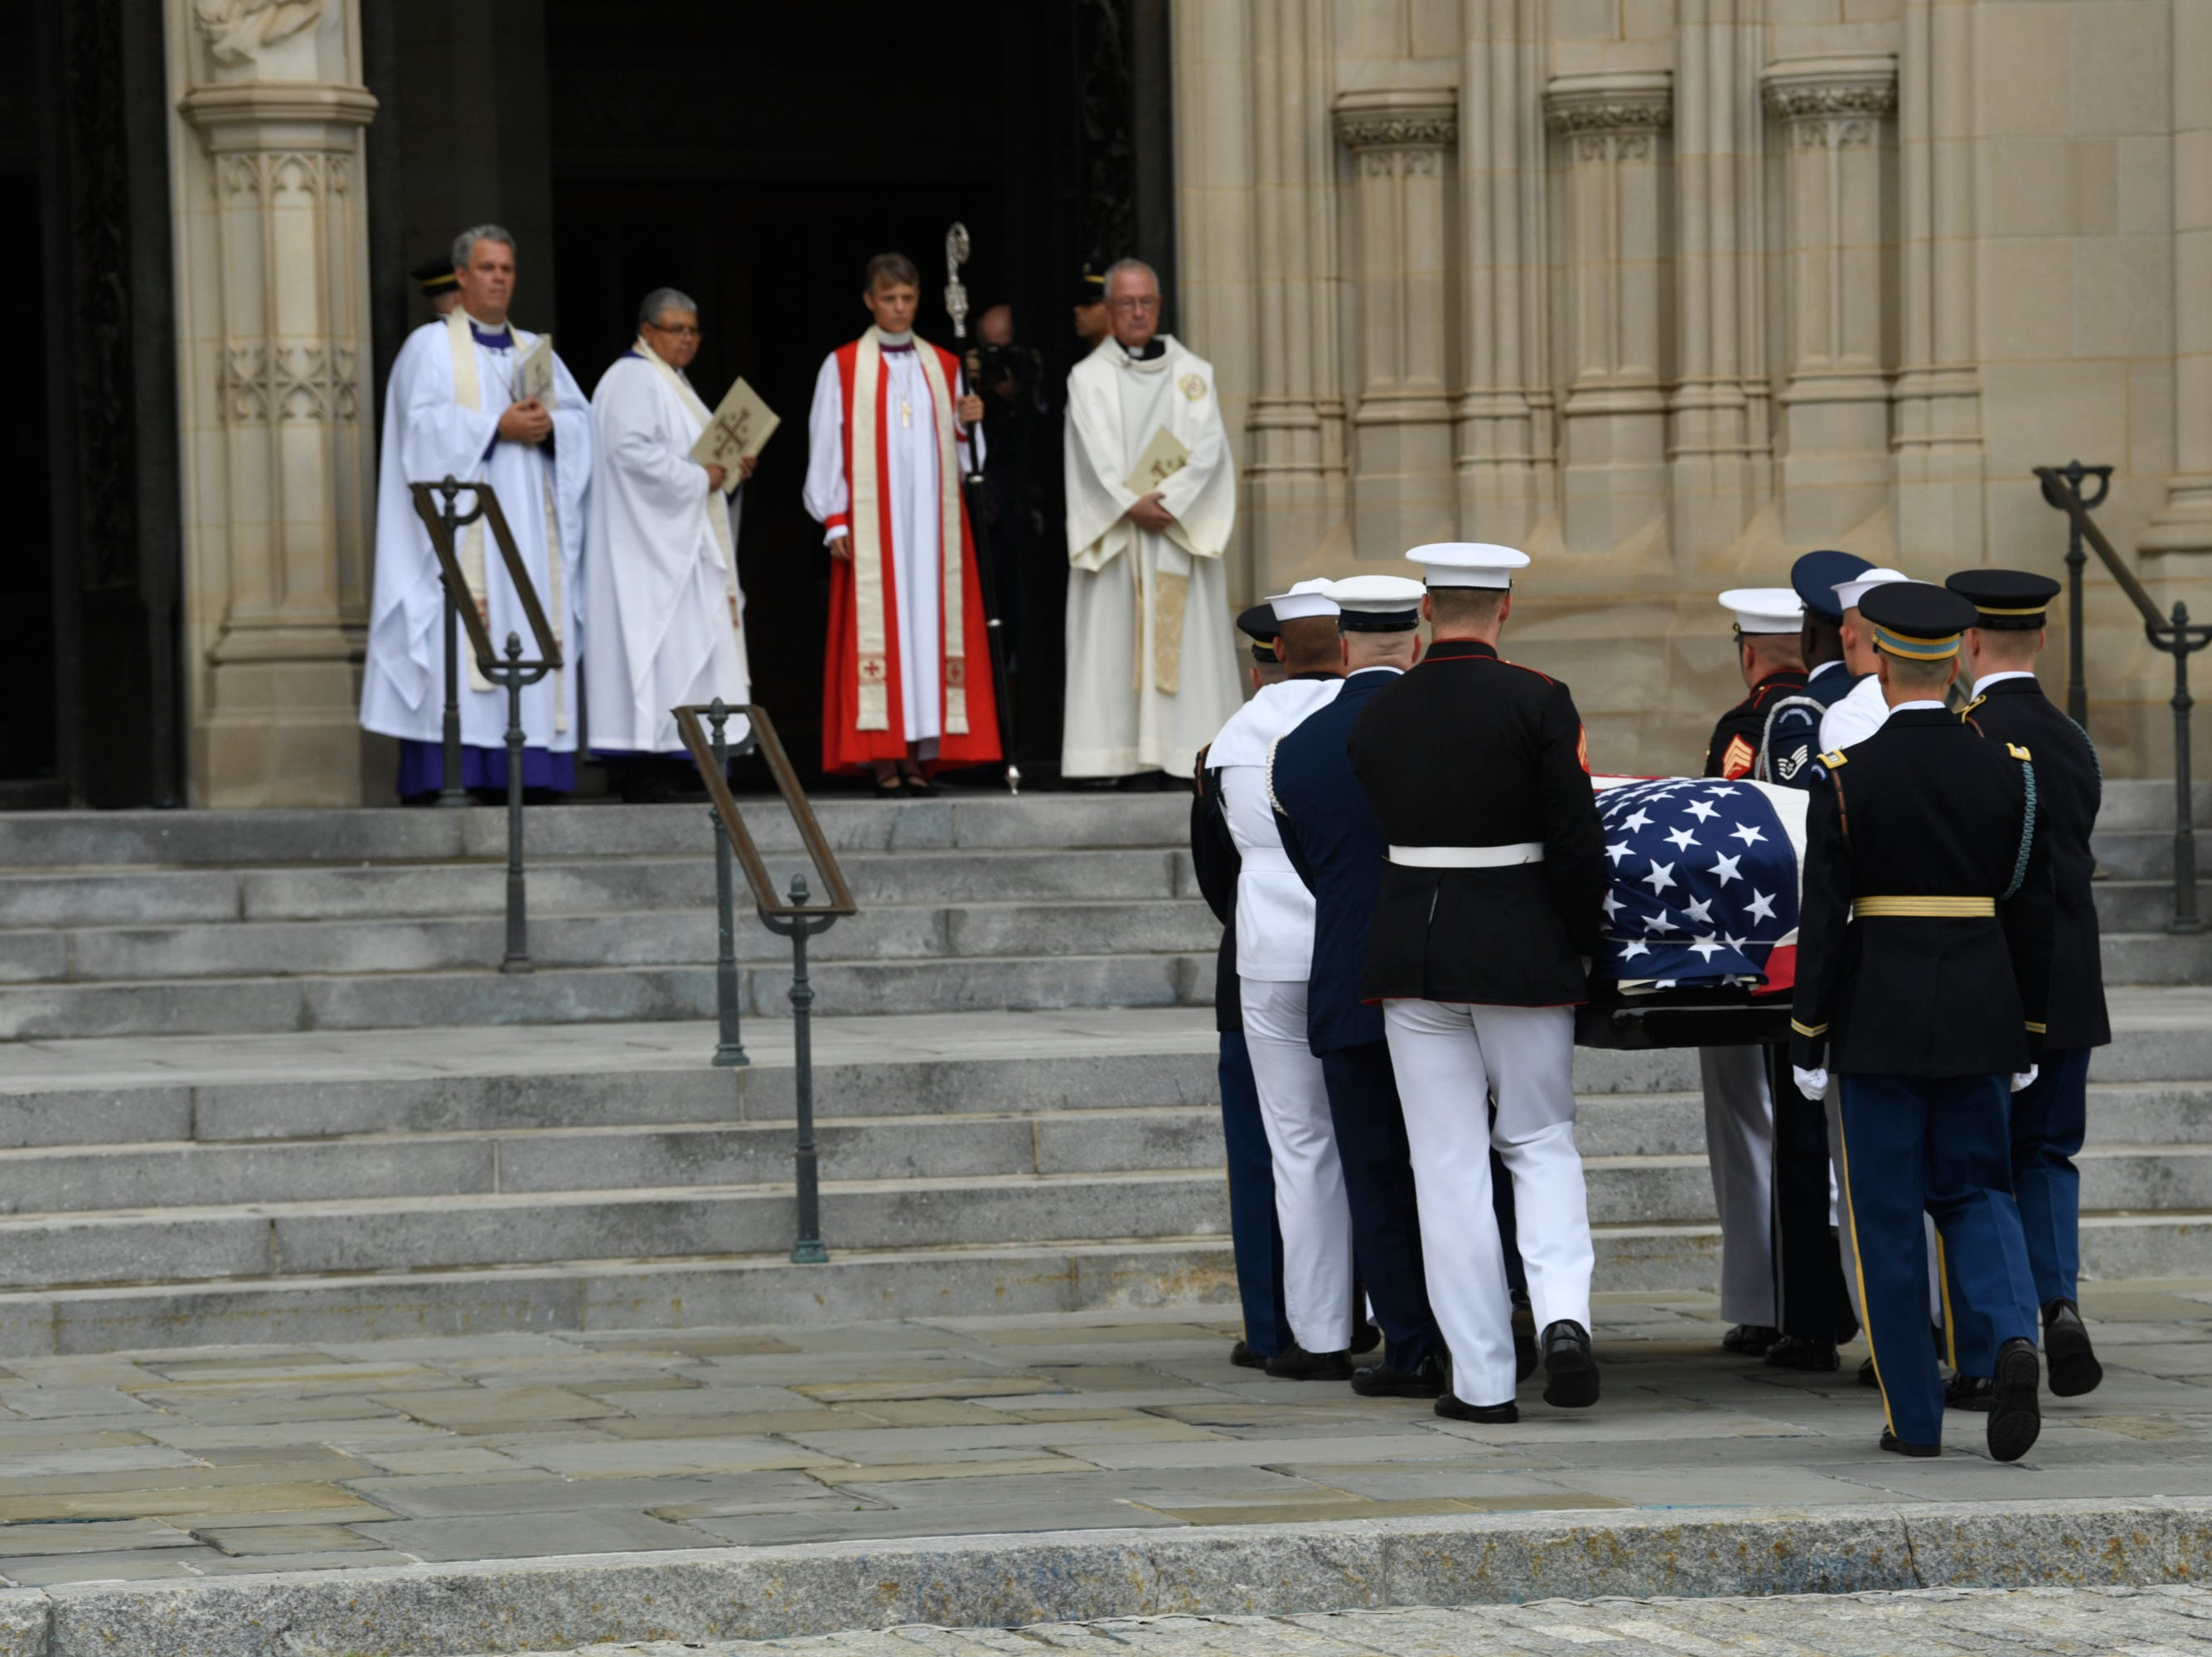 9/1/18 9:44:33 AM -- Washington, DC, U.S.A  -- The flag-draped casket bearing John McCain is carried into the National Cathedral in Washington for a memorial service on Sept. 1, 2018. Sen. McCain on Aug. 25. --    Photo by Jasper Colt, USA TODAY Staff